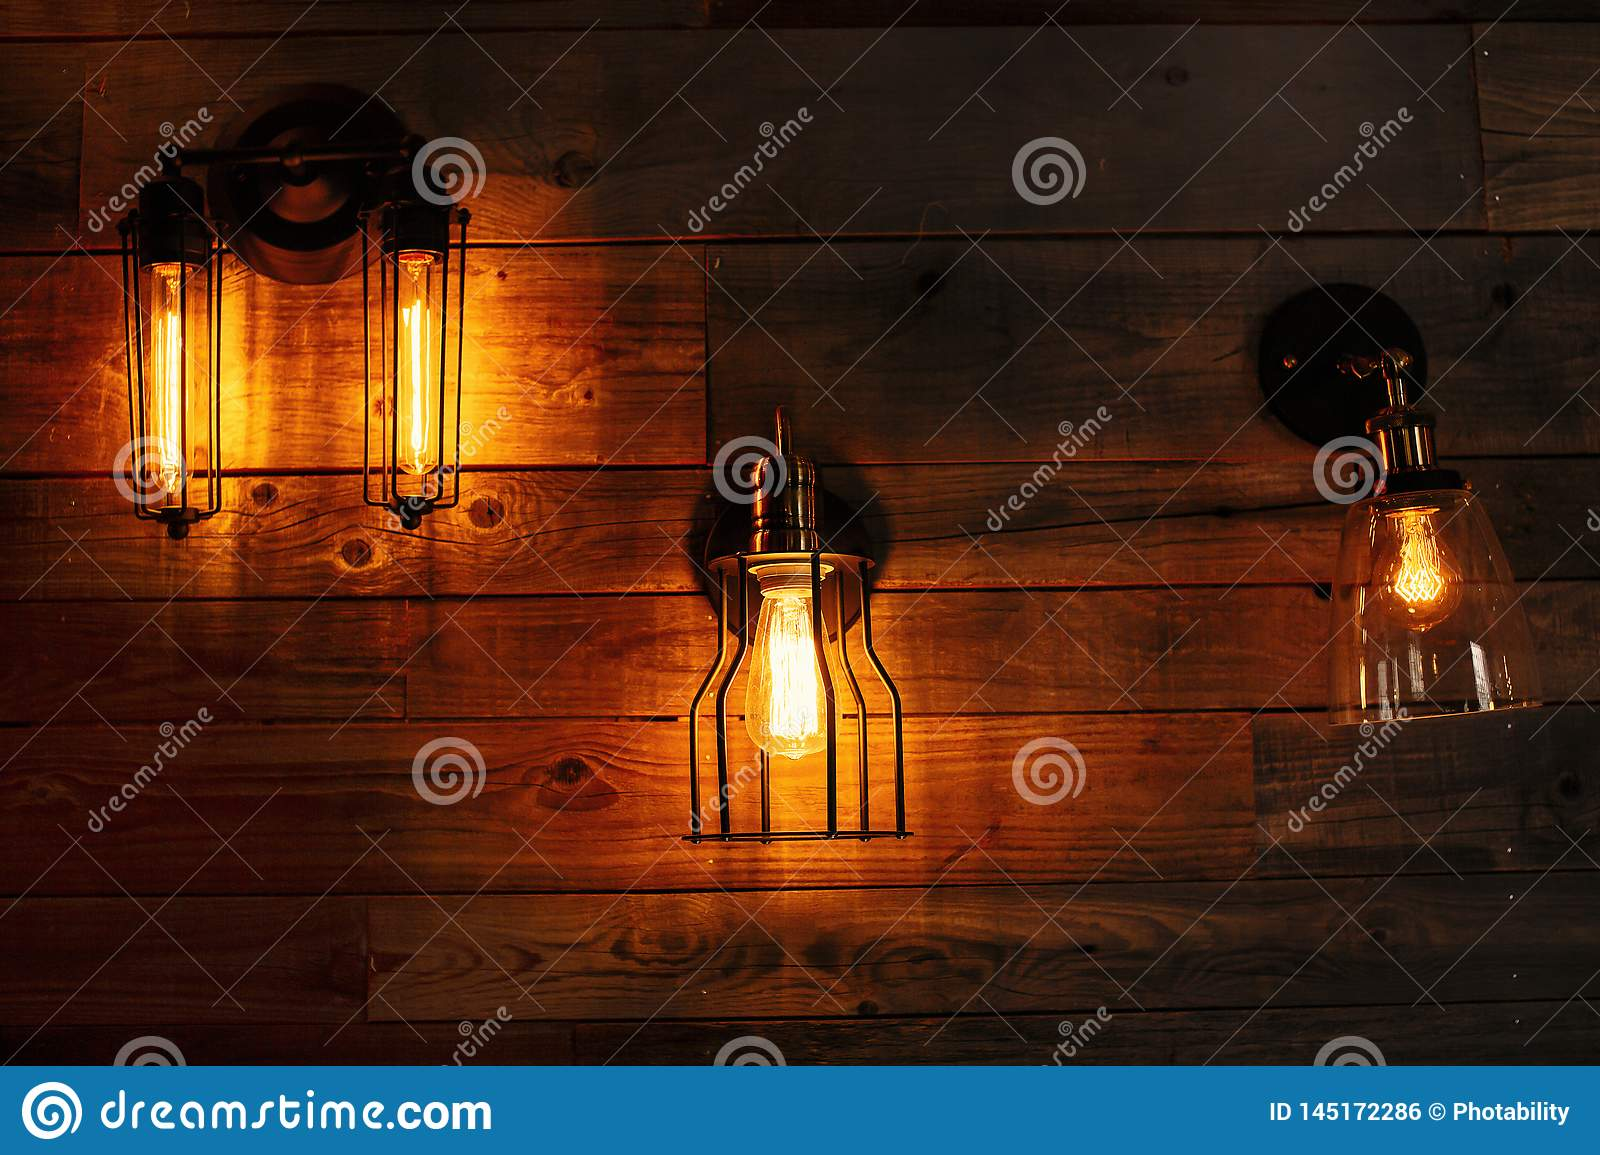 Lanterns on a wooden wall